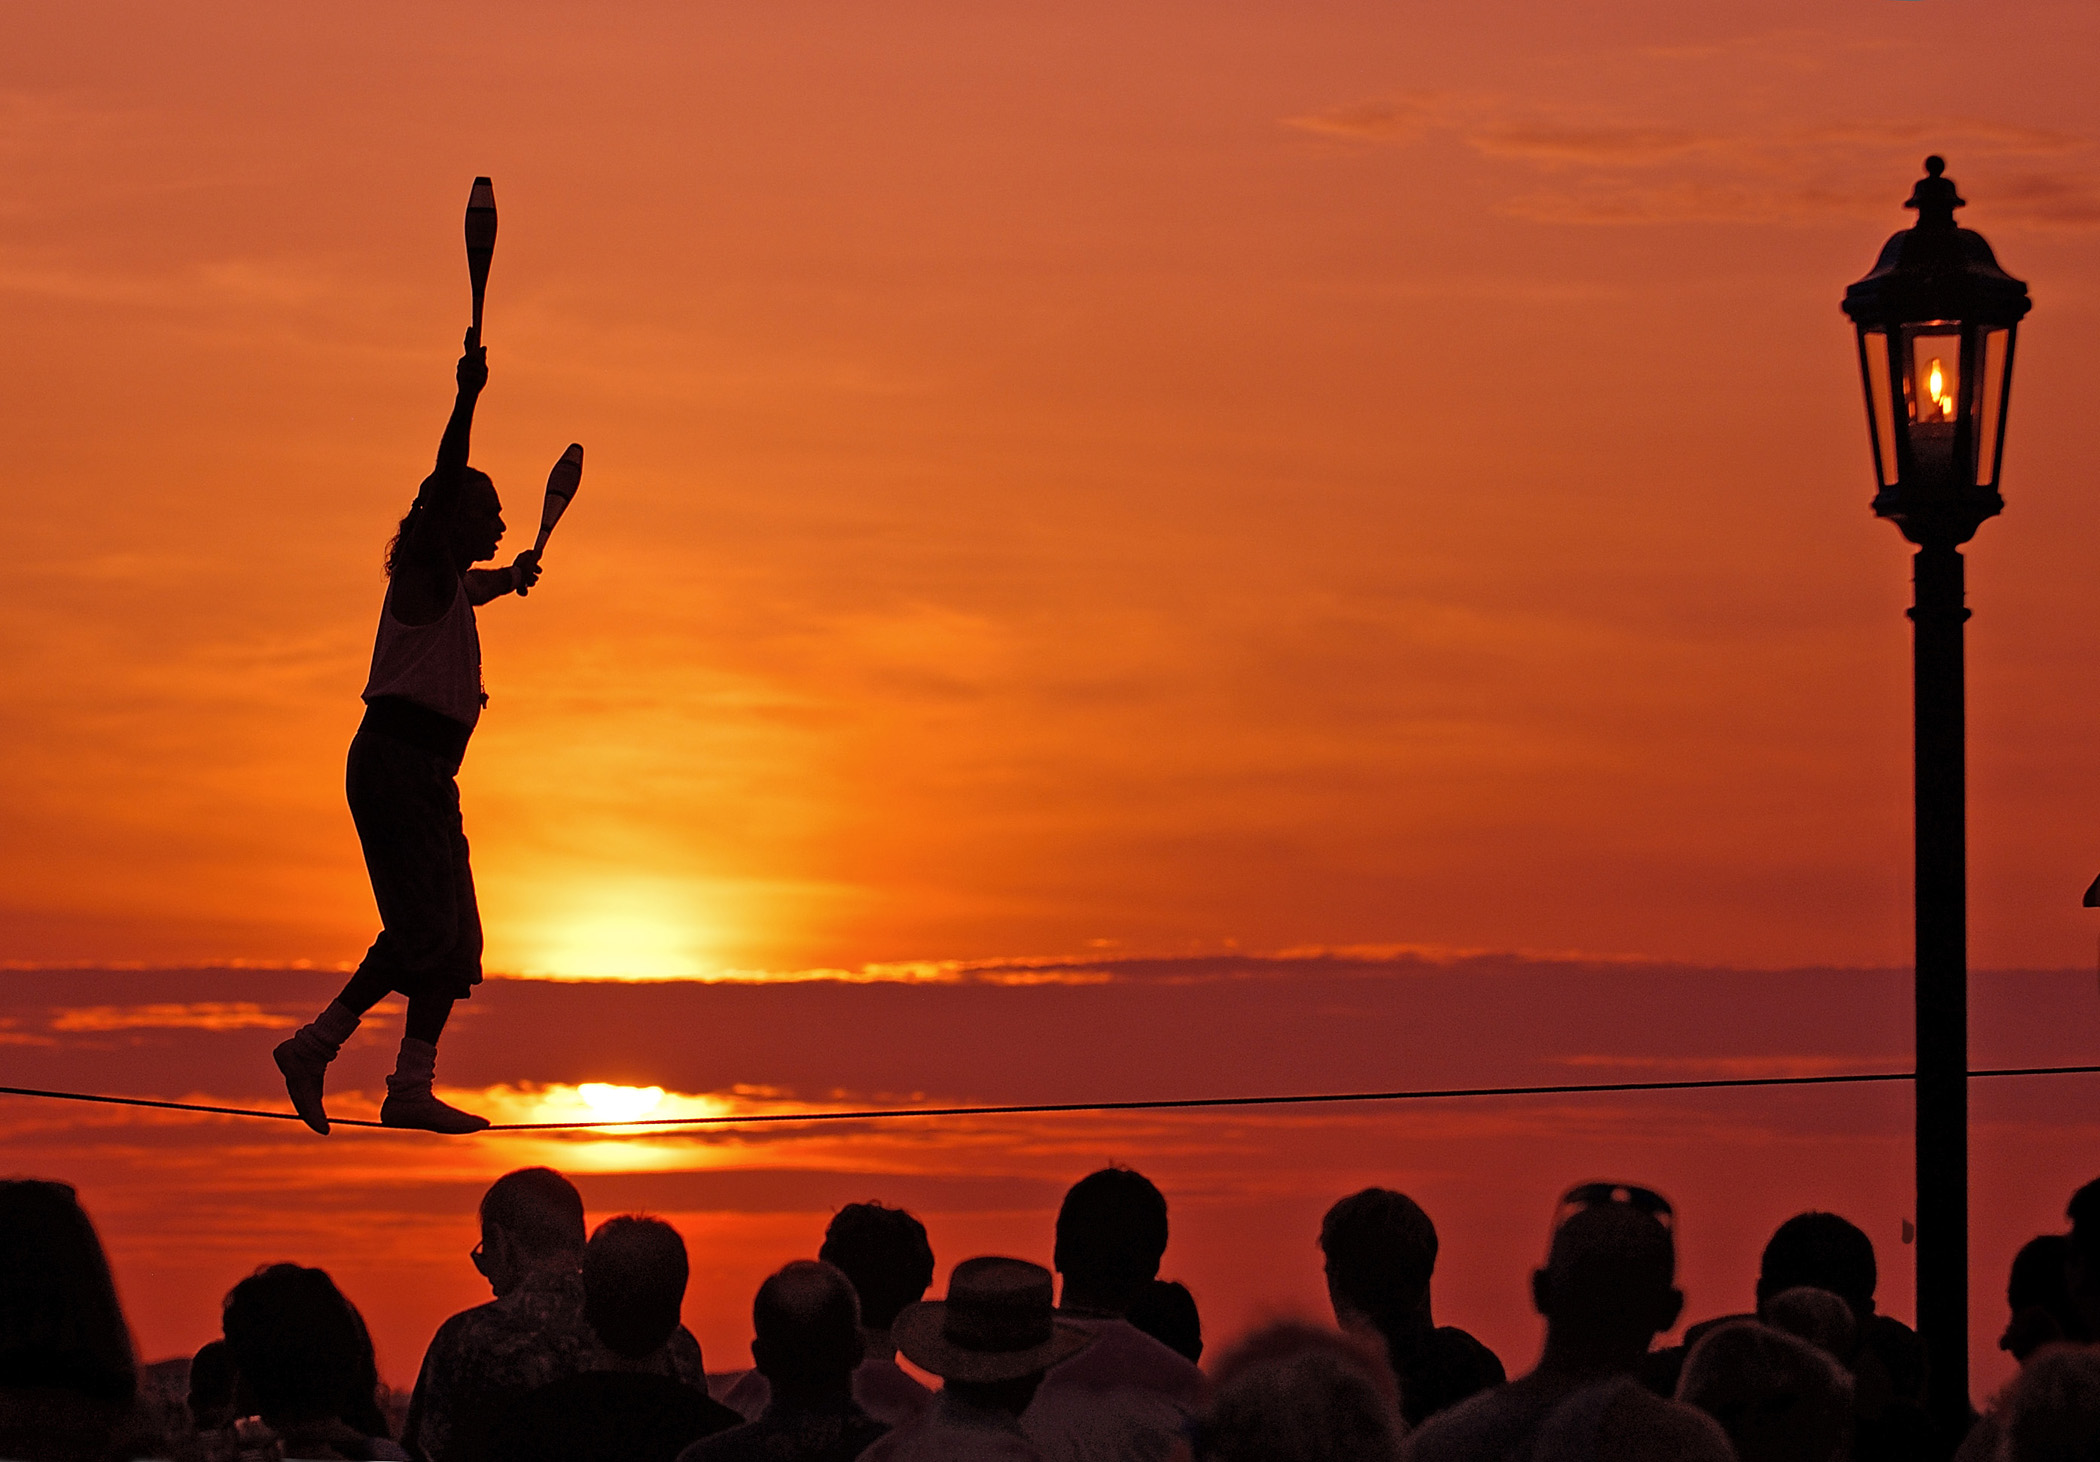 Busker Will Soto walks a tightrope at the sunset celebration in Key West, Fla. The sunset celebration at Mallory Square is a daily ritual for visitors to this subtropical island at the bottom of the Florida Keys island chain. Photo by Bob Krist/Florida Keys News Bureau